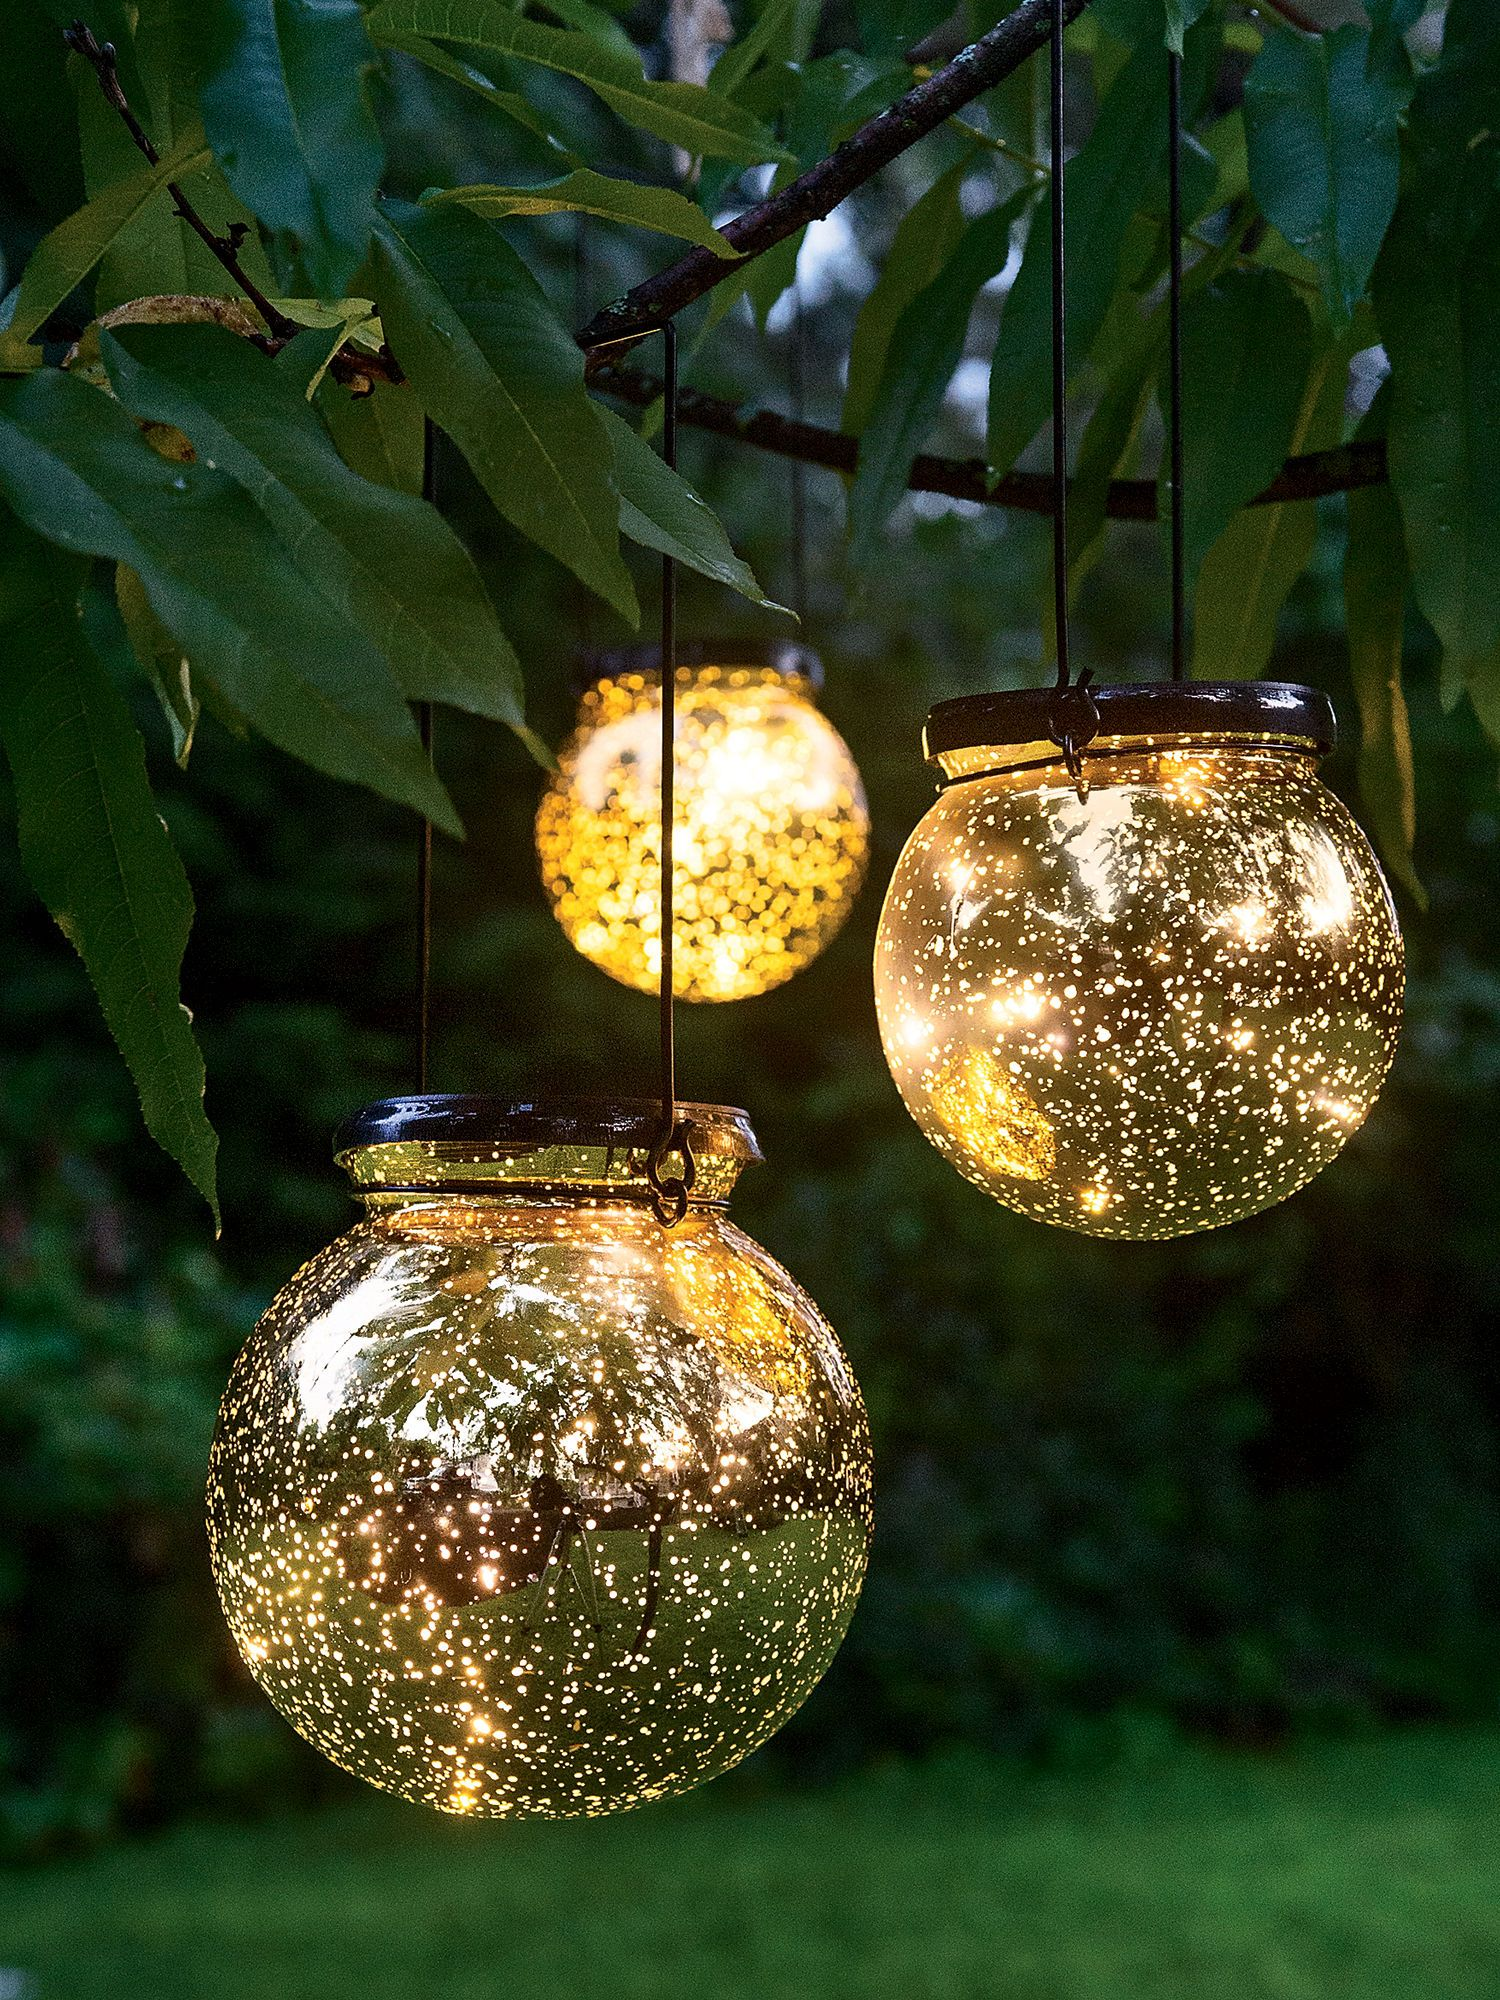 LED Fairy Dust Ball: Outdoor Battery Operated Globe Lights   Mercury Glass  Globes By Day Theyu0027re Shiny Golden Orbs. At Night, Pinpoints Of Light  Emerge Like ...